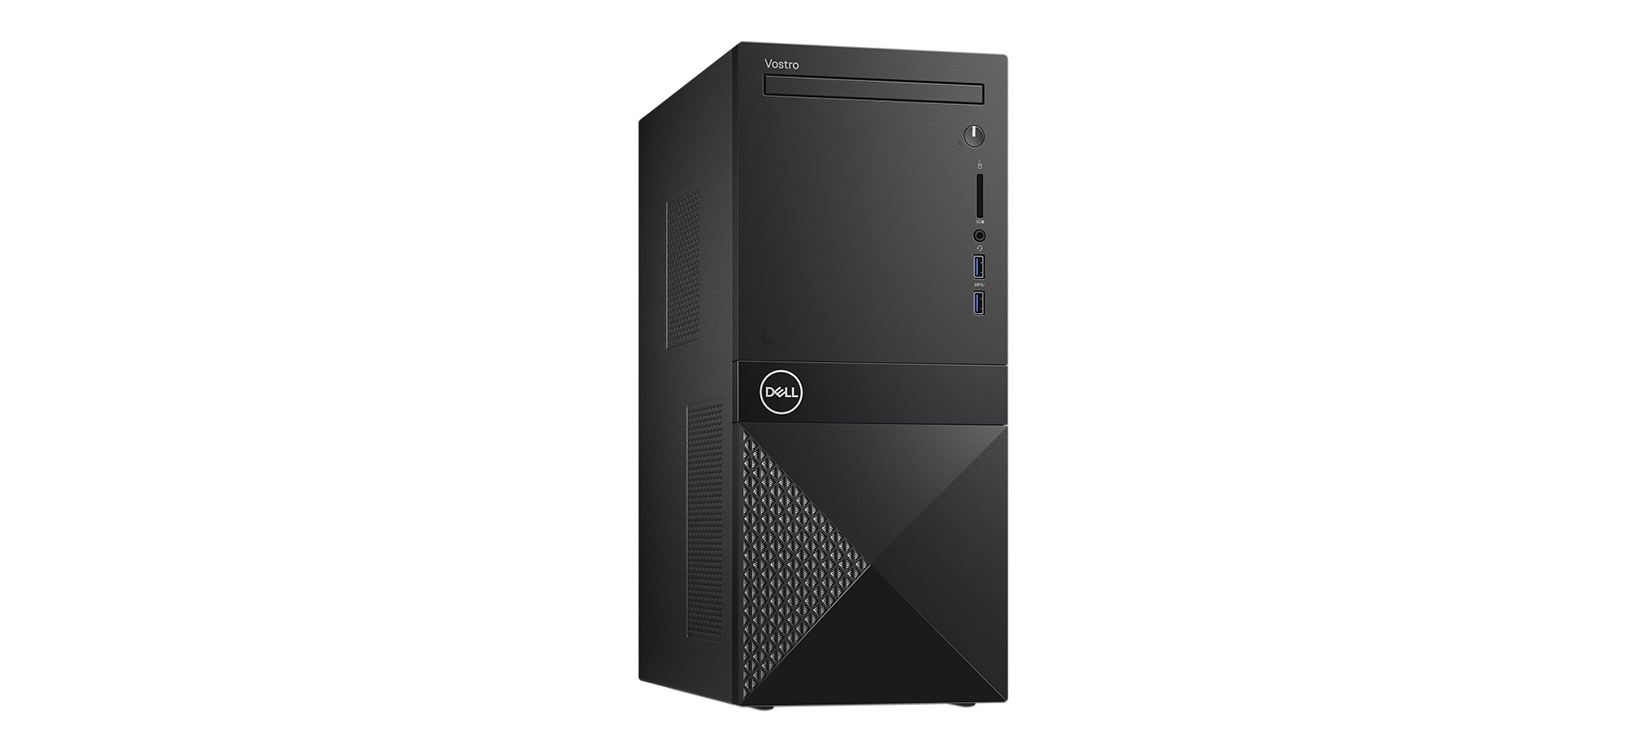 PC Dell Vostro 3671 (i3-9100/4GB RAM/1TB HDD/DVDRW/WL+BT/K+M/Win 10) (42VT370047) - hakivn